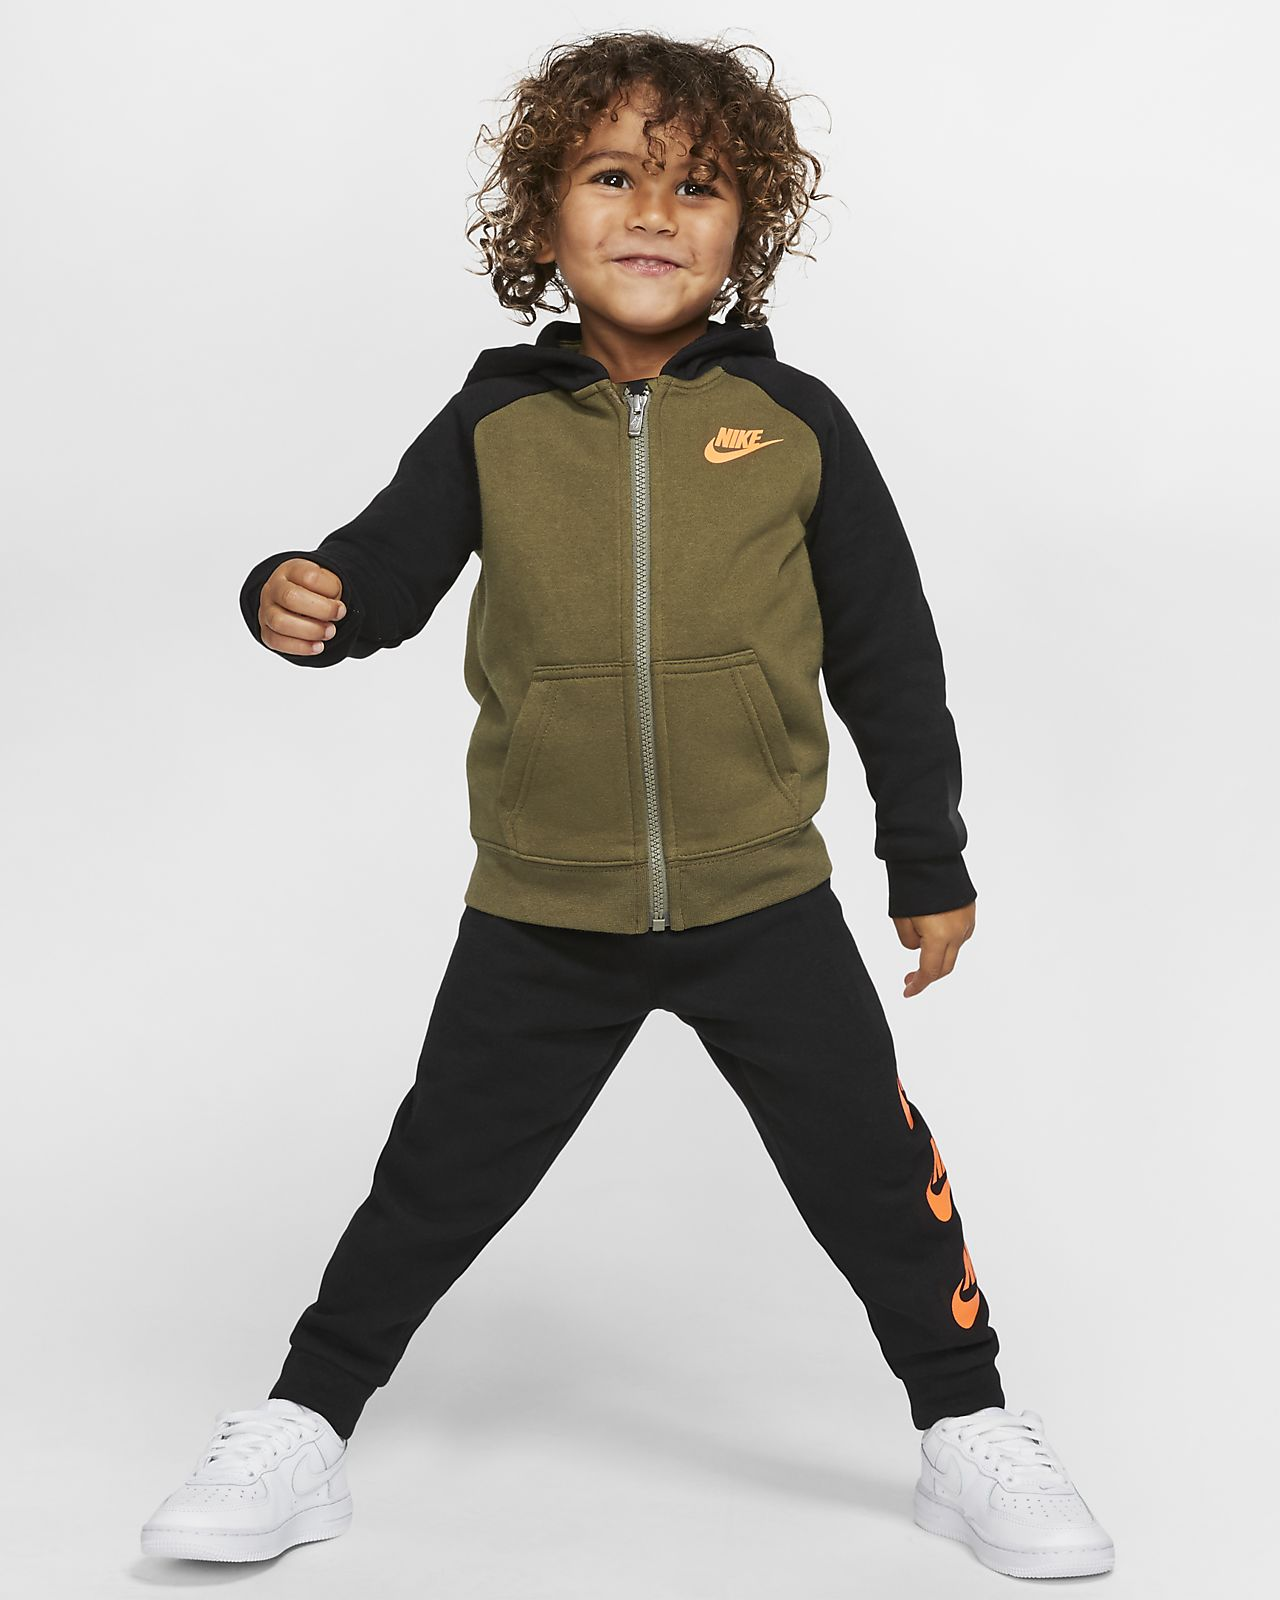 Nike Sportswear Toddler Hoodie and Pants Set